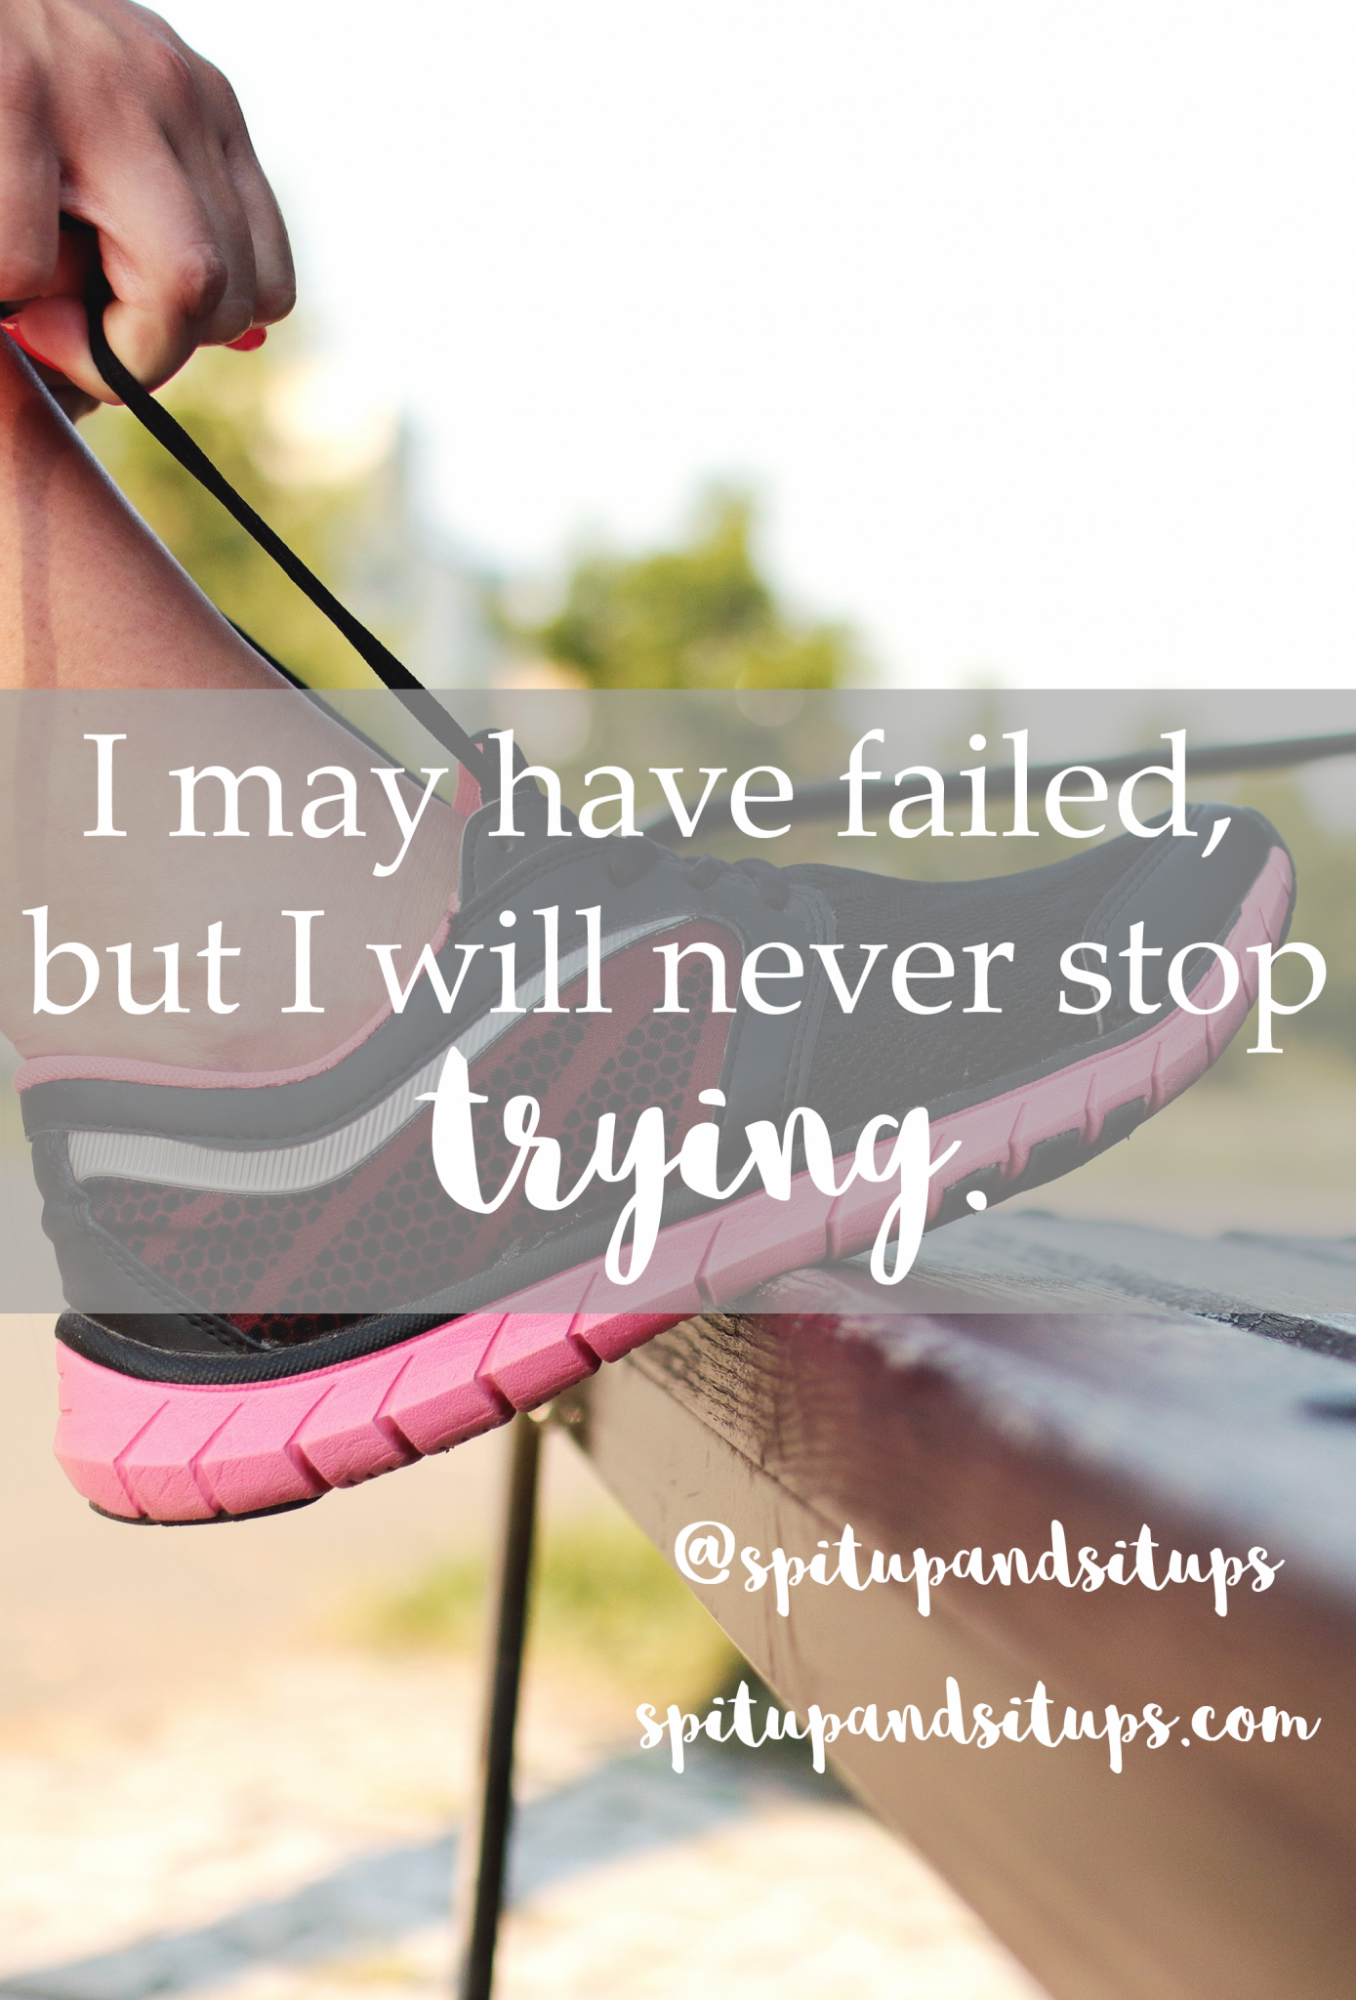 I May Have Failed But I Will Never Stop Trying - Fitness Inspiration Quotes - Inspirational Quote - Getting Back On Track - Healthy Living - Spit Up and Sit Ups